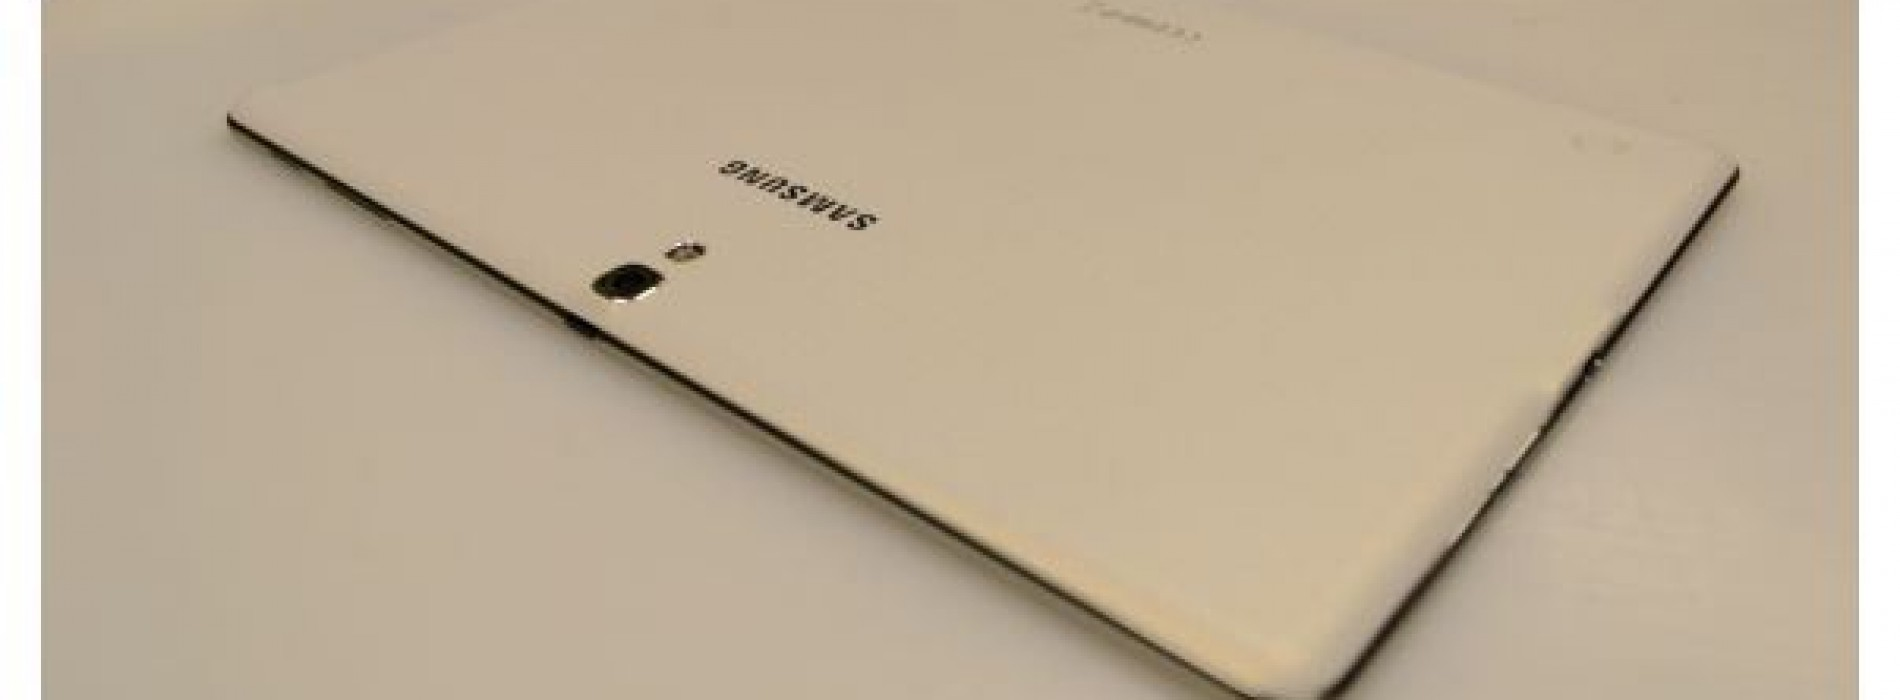 8.4-inch Samsung Galaxy Tab S details revealed